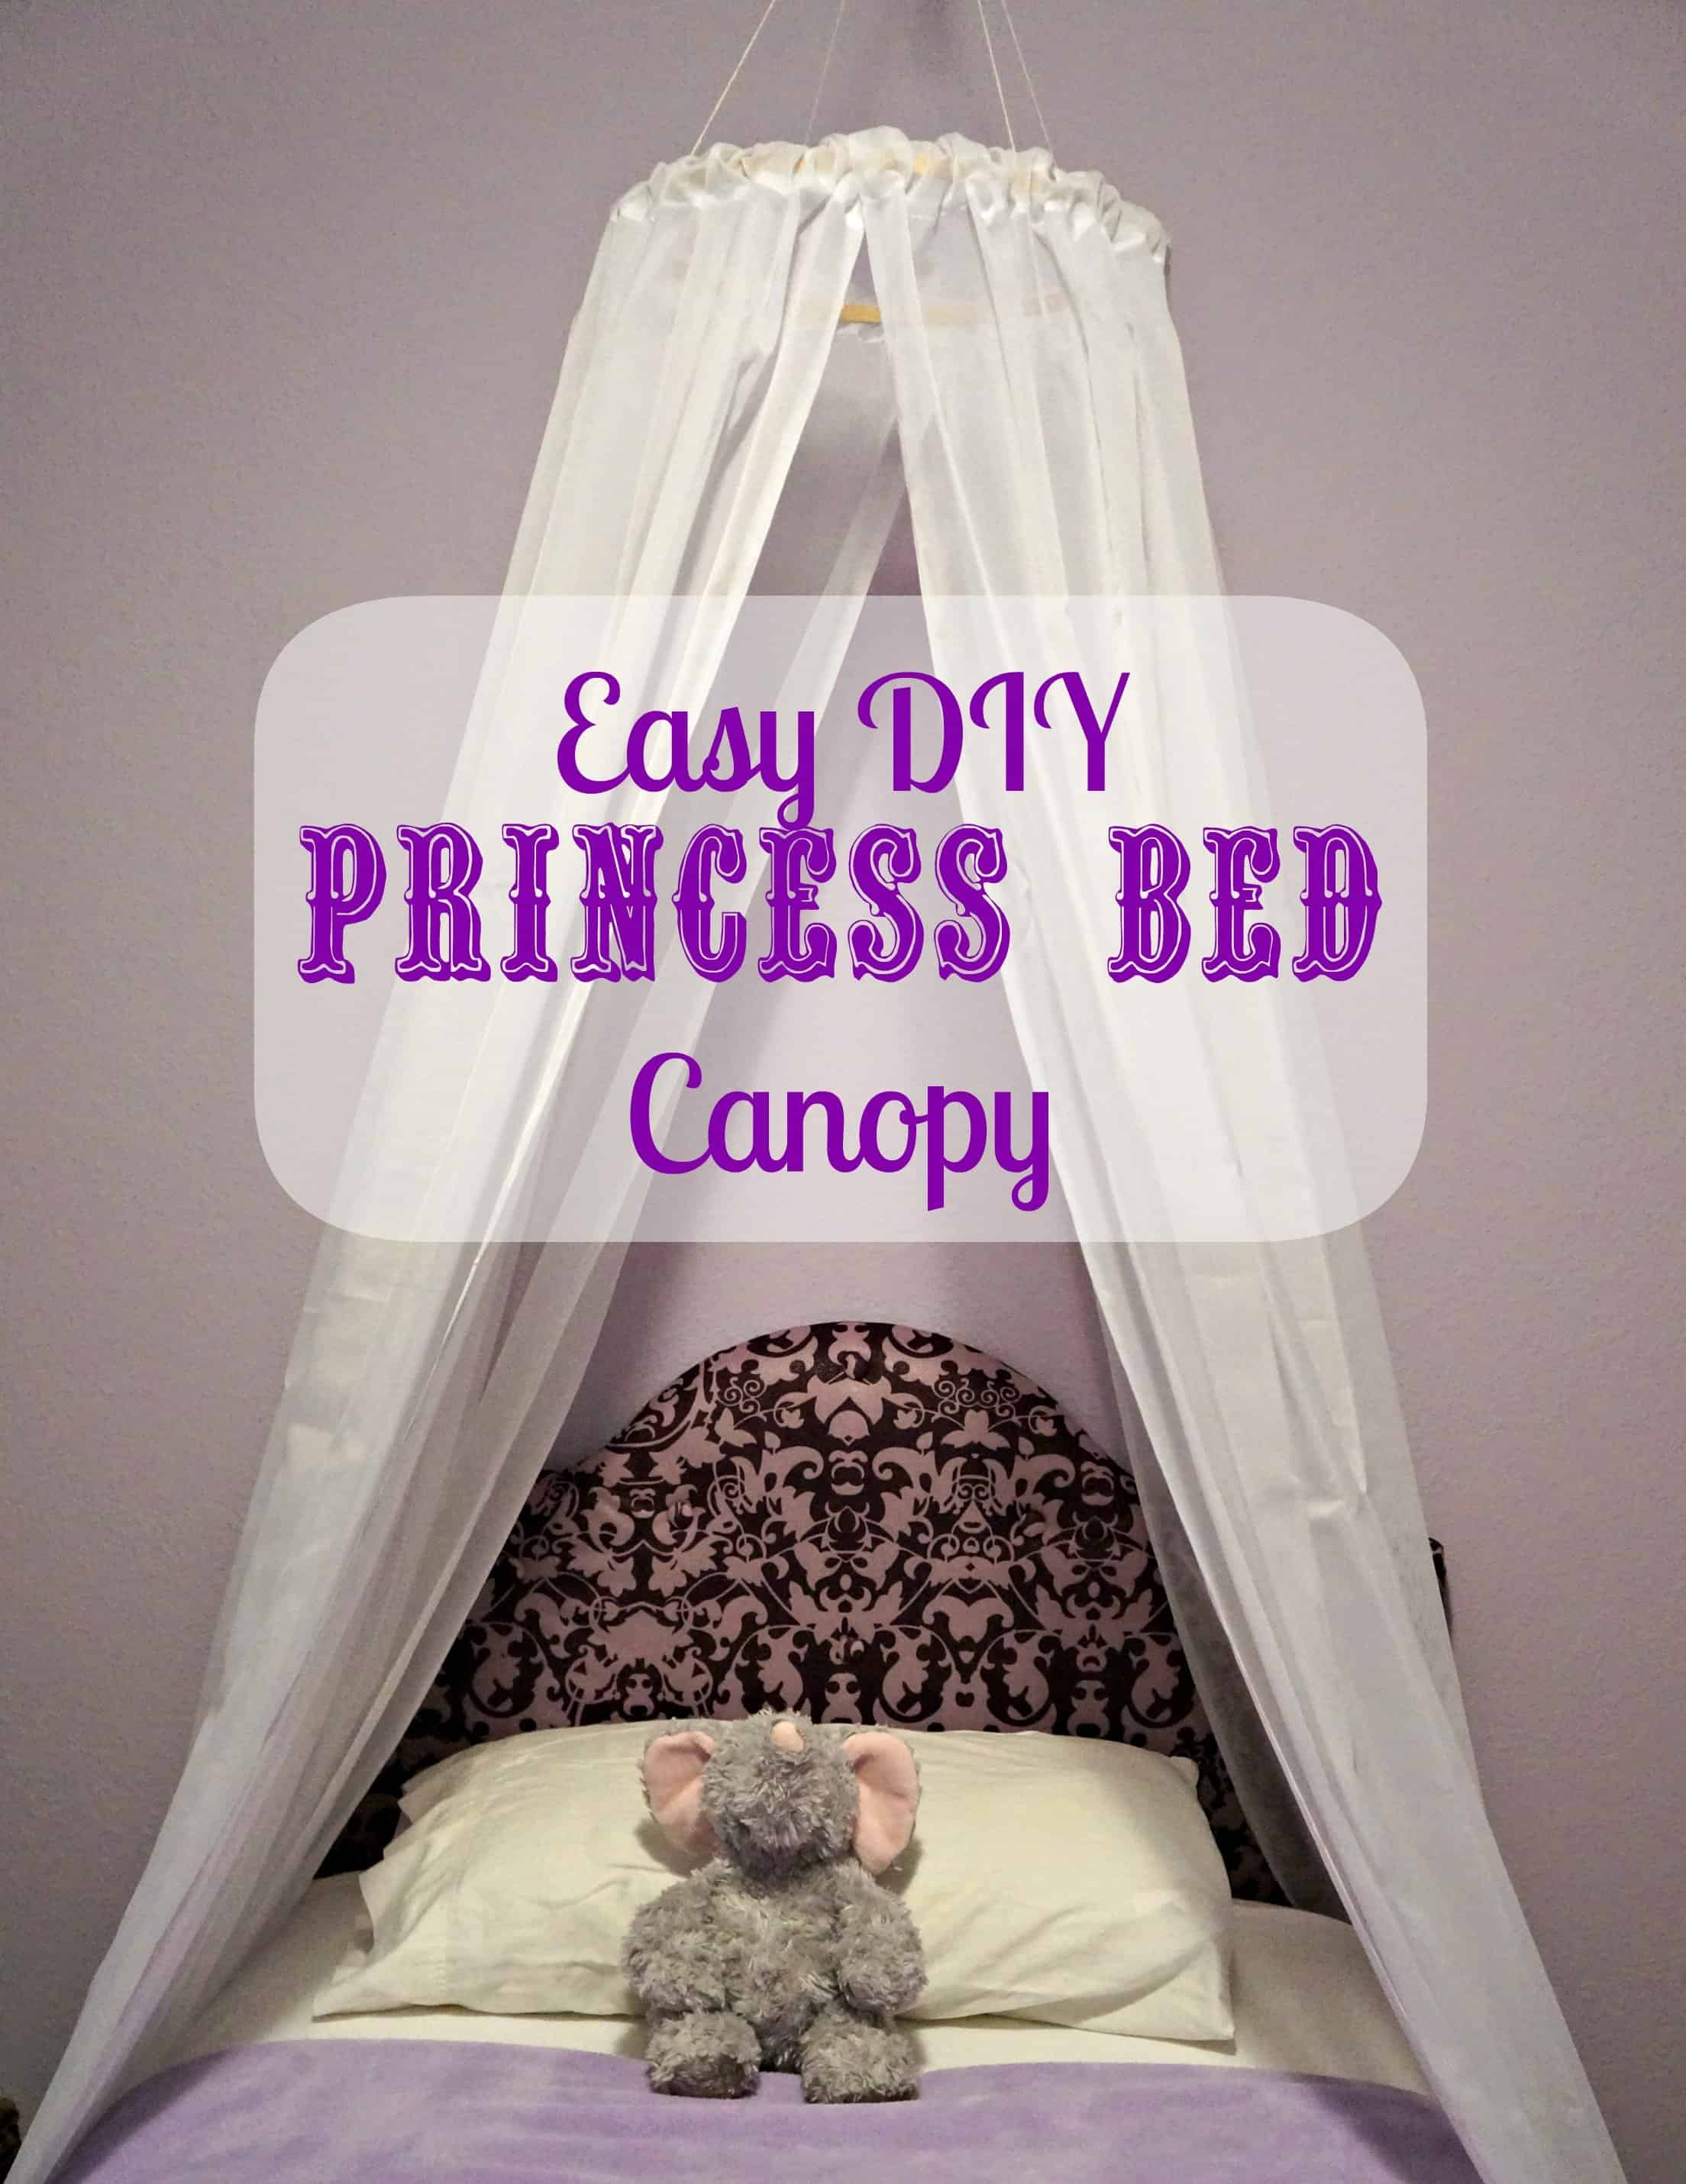 Easy DIY princess bed canopy. No sew comes together in under 10 minutes. : diy bed canopy kids - memphite.com